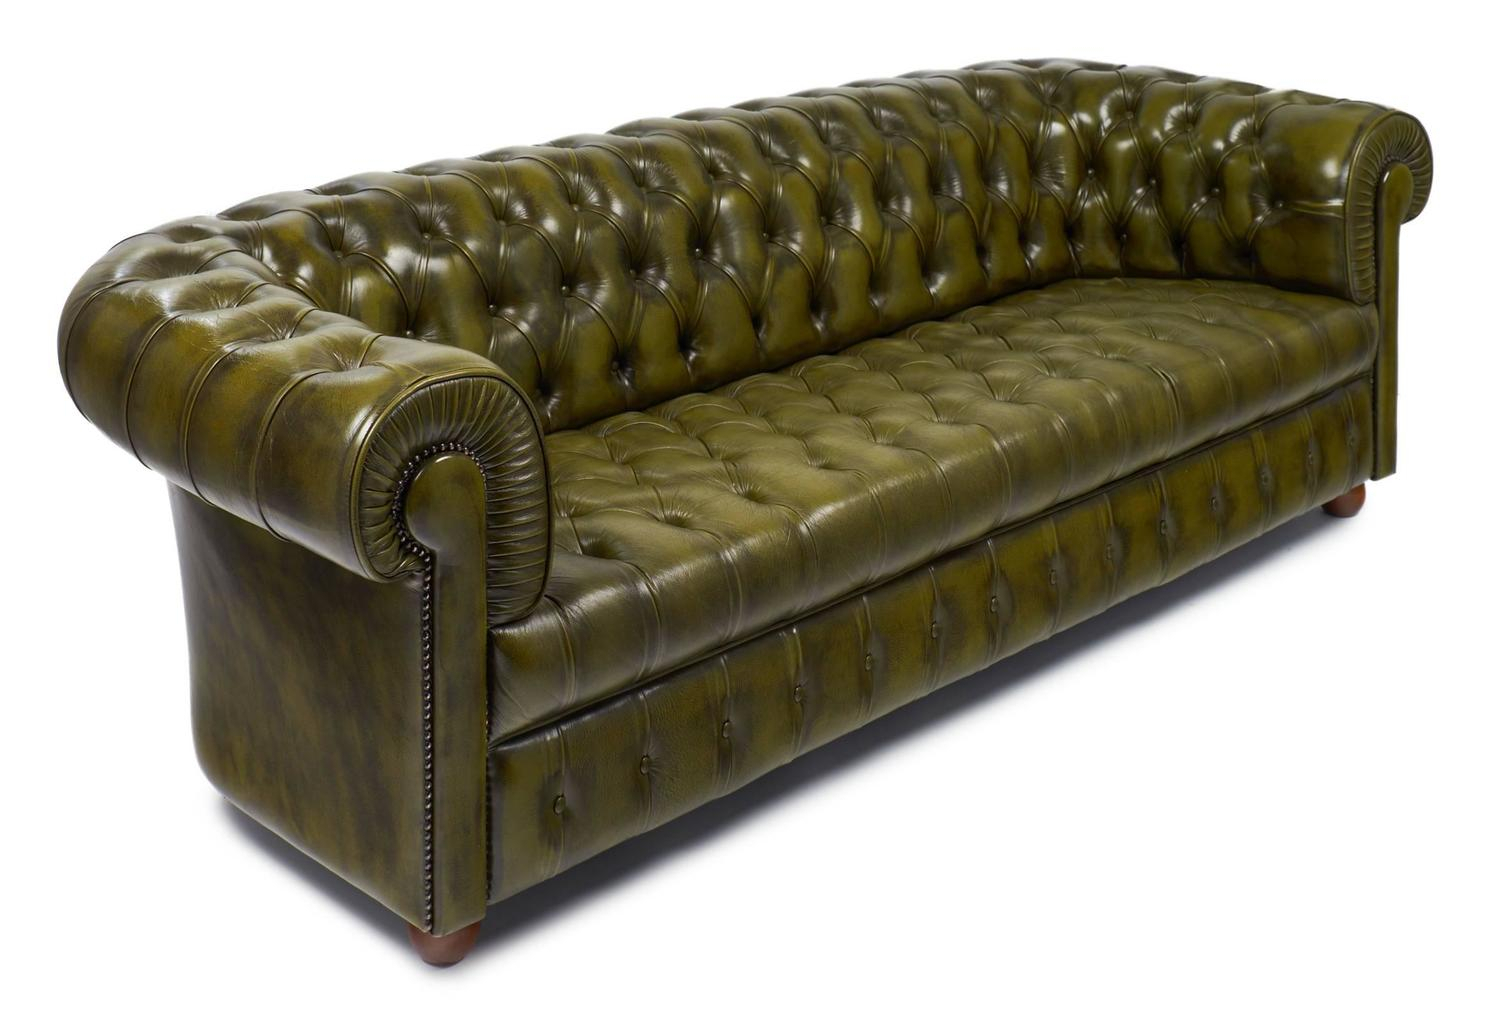 Vintage Green Leather Chesterfield Sofa At 1Stdibs Regarding Vintage Chesterfield Sofas (View 15 of 15)